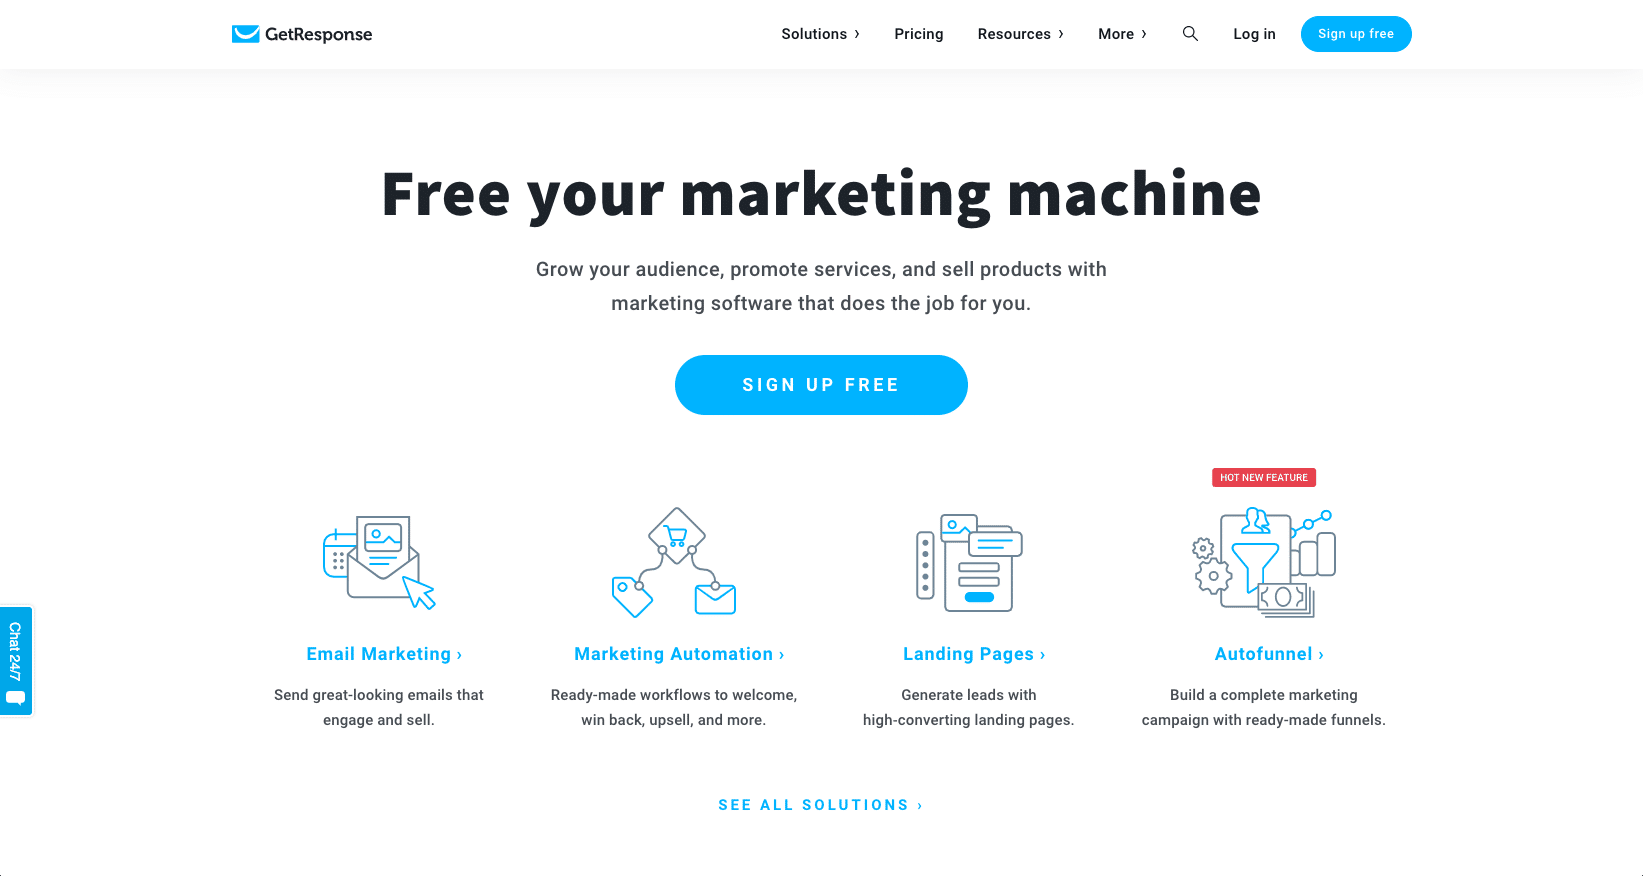 GetResponse - Marketing Software for Small Businesses